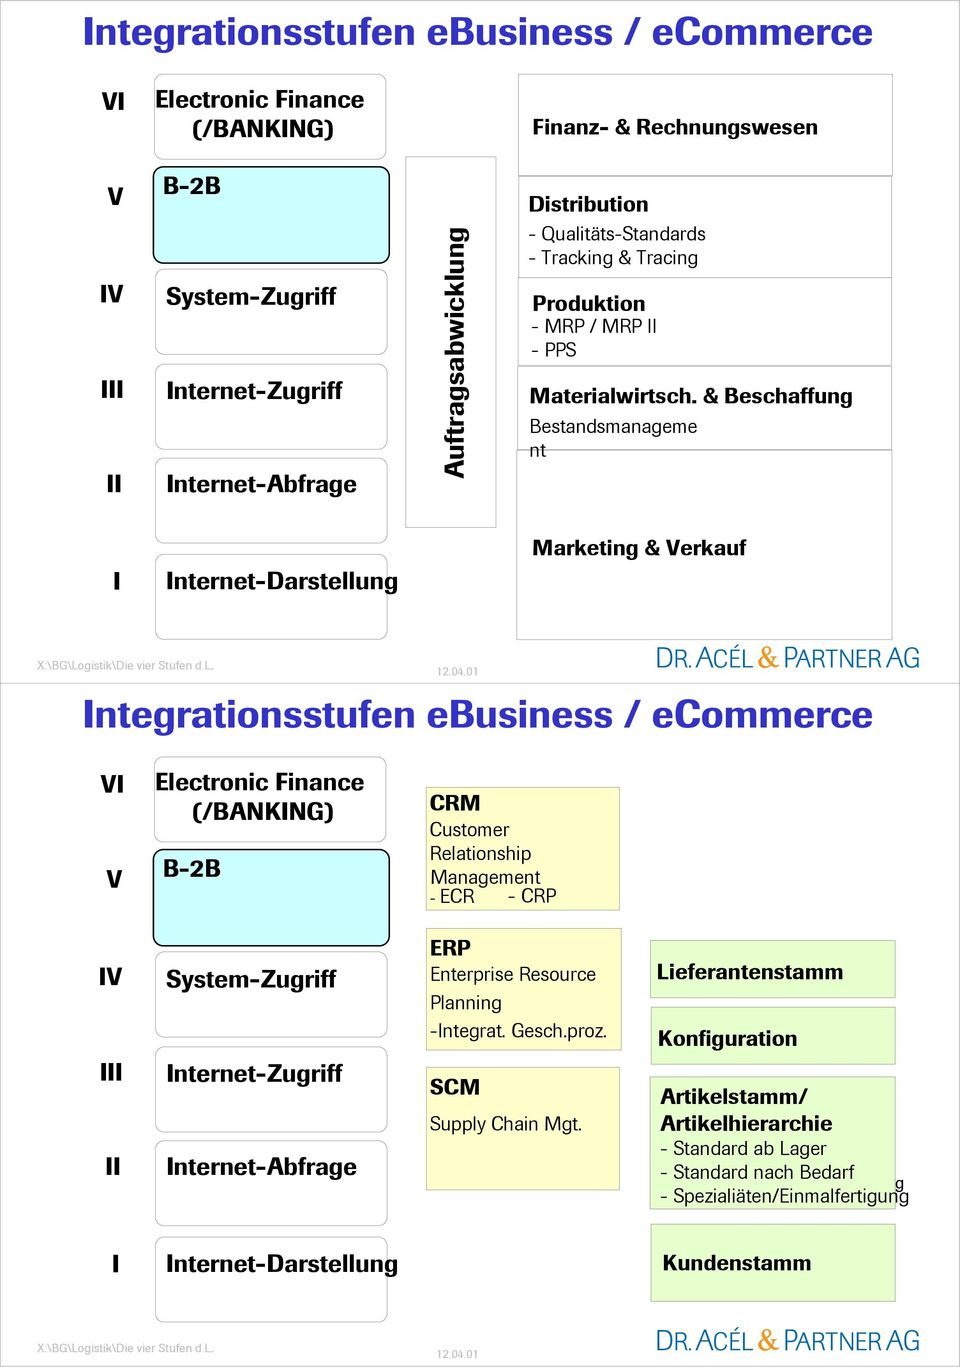 & Bestandsmanageme nt I Internet-Darstellung Marketing & Verkauf Integrationsstufen ebusiness / ecommerce VI V Electronic Finance (/BANKING) B-2B CRM Relationship Management - ECR -CRP IV III II